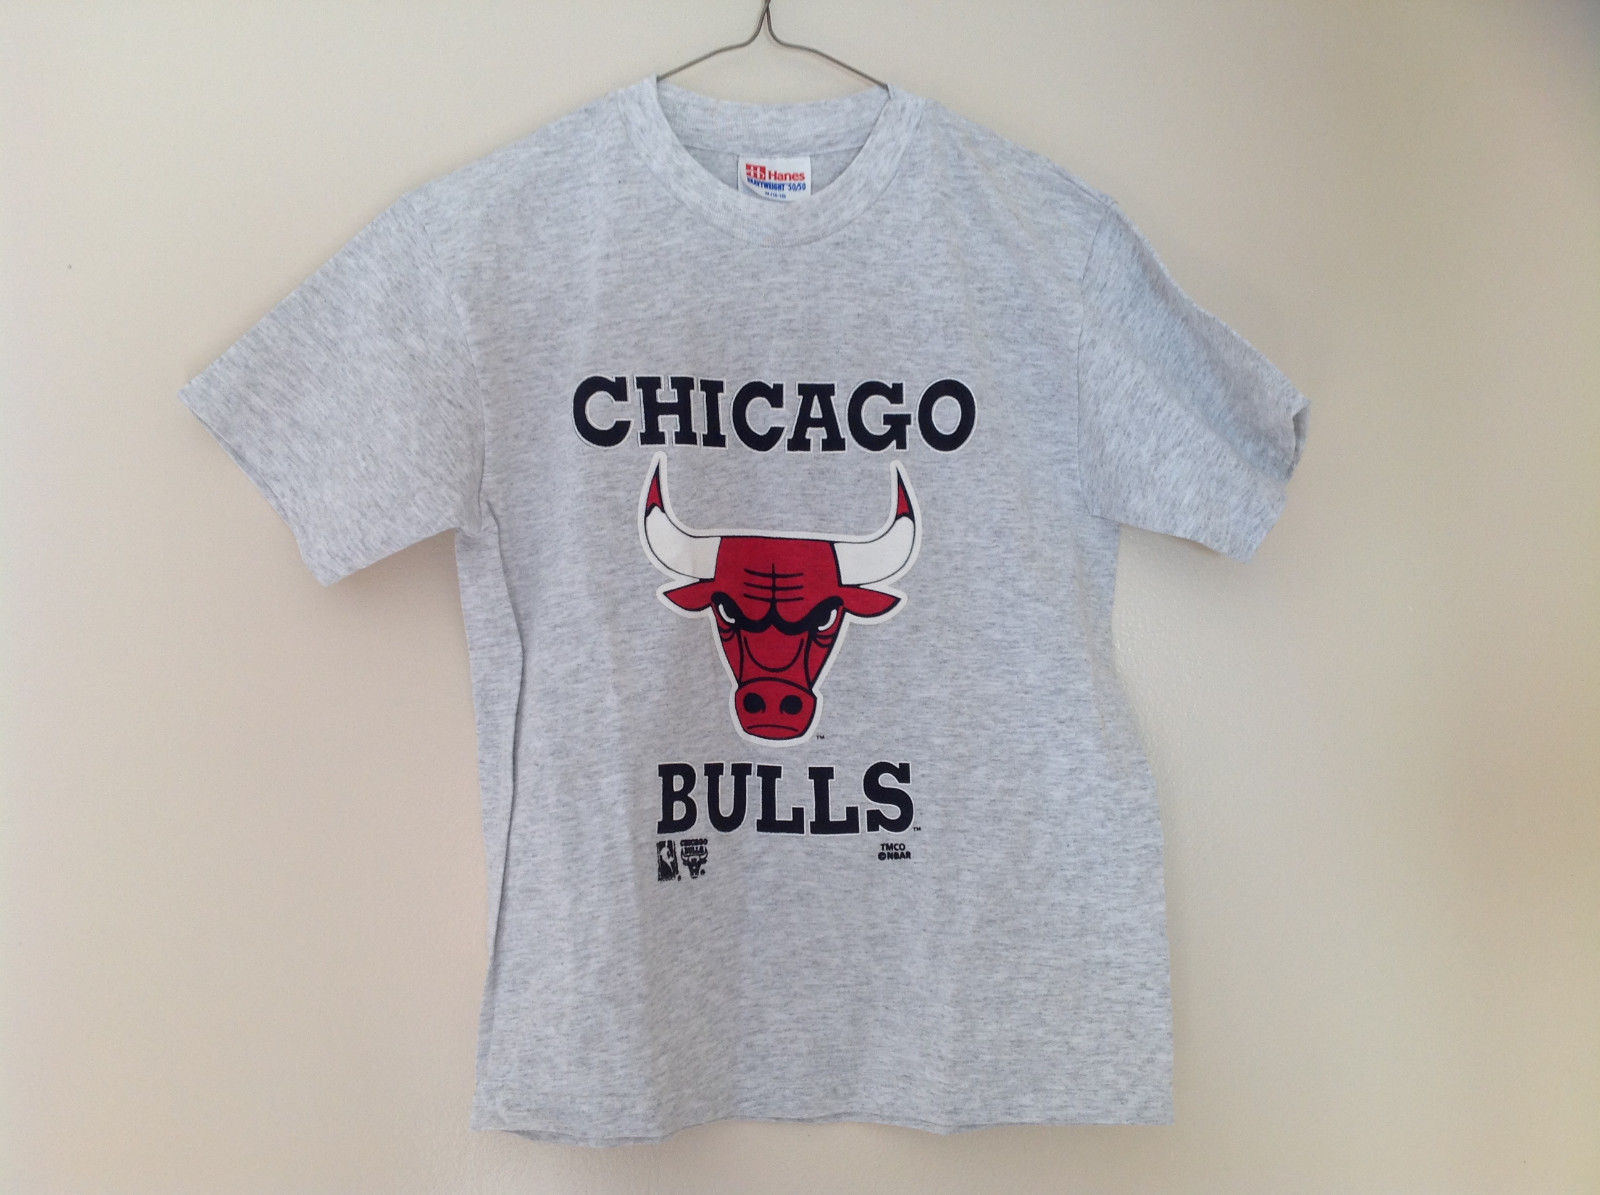 Hanes Heather Gray Chicago Bulls T-Shirt Bull Head Graphic Size Medium 10 to 12